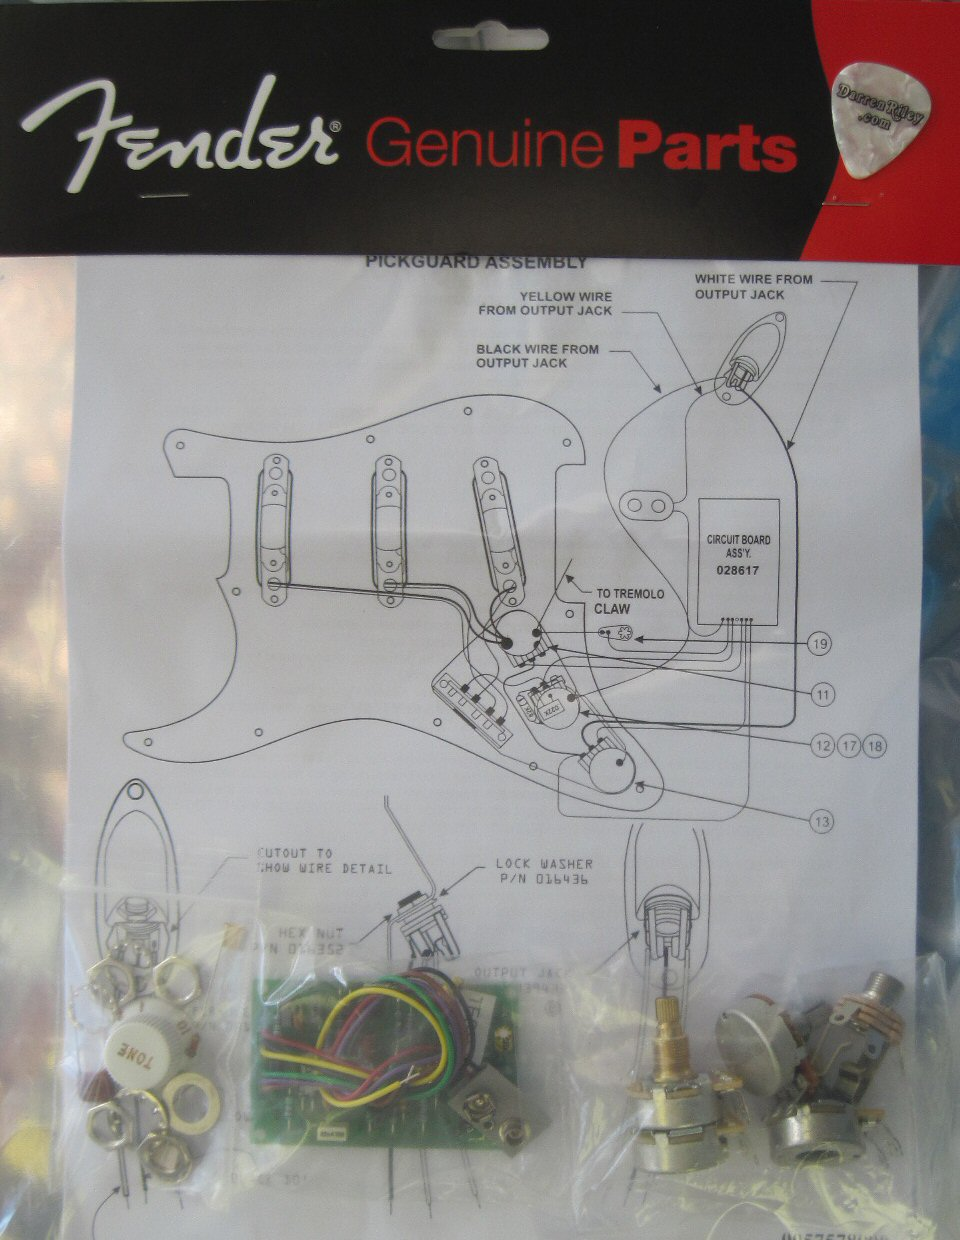 Wiring Diagram Fender Mid Boost - Wiring Diagram M4 on